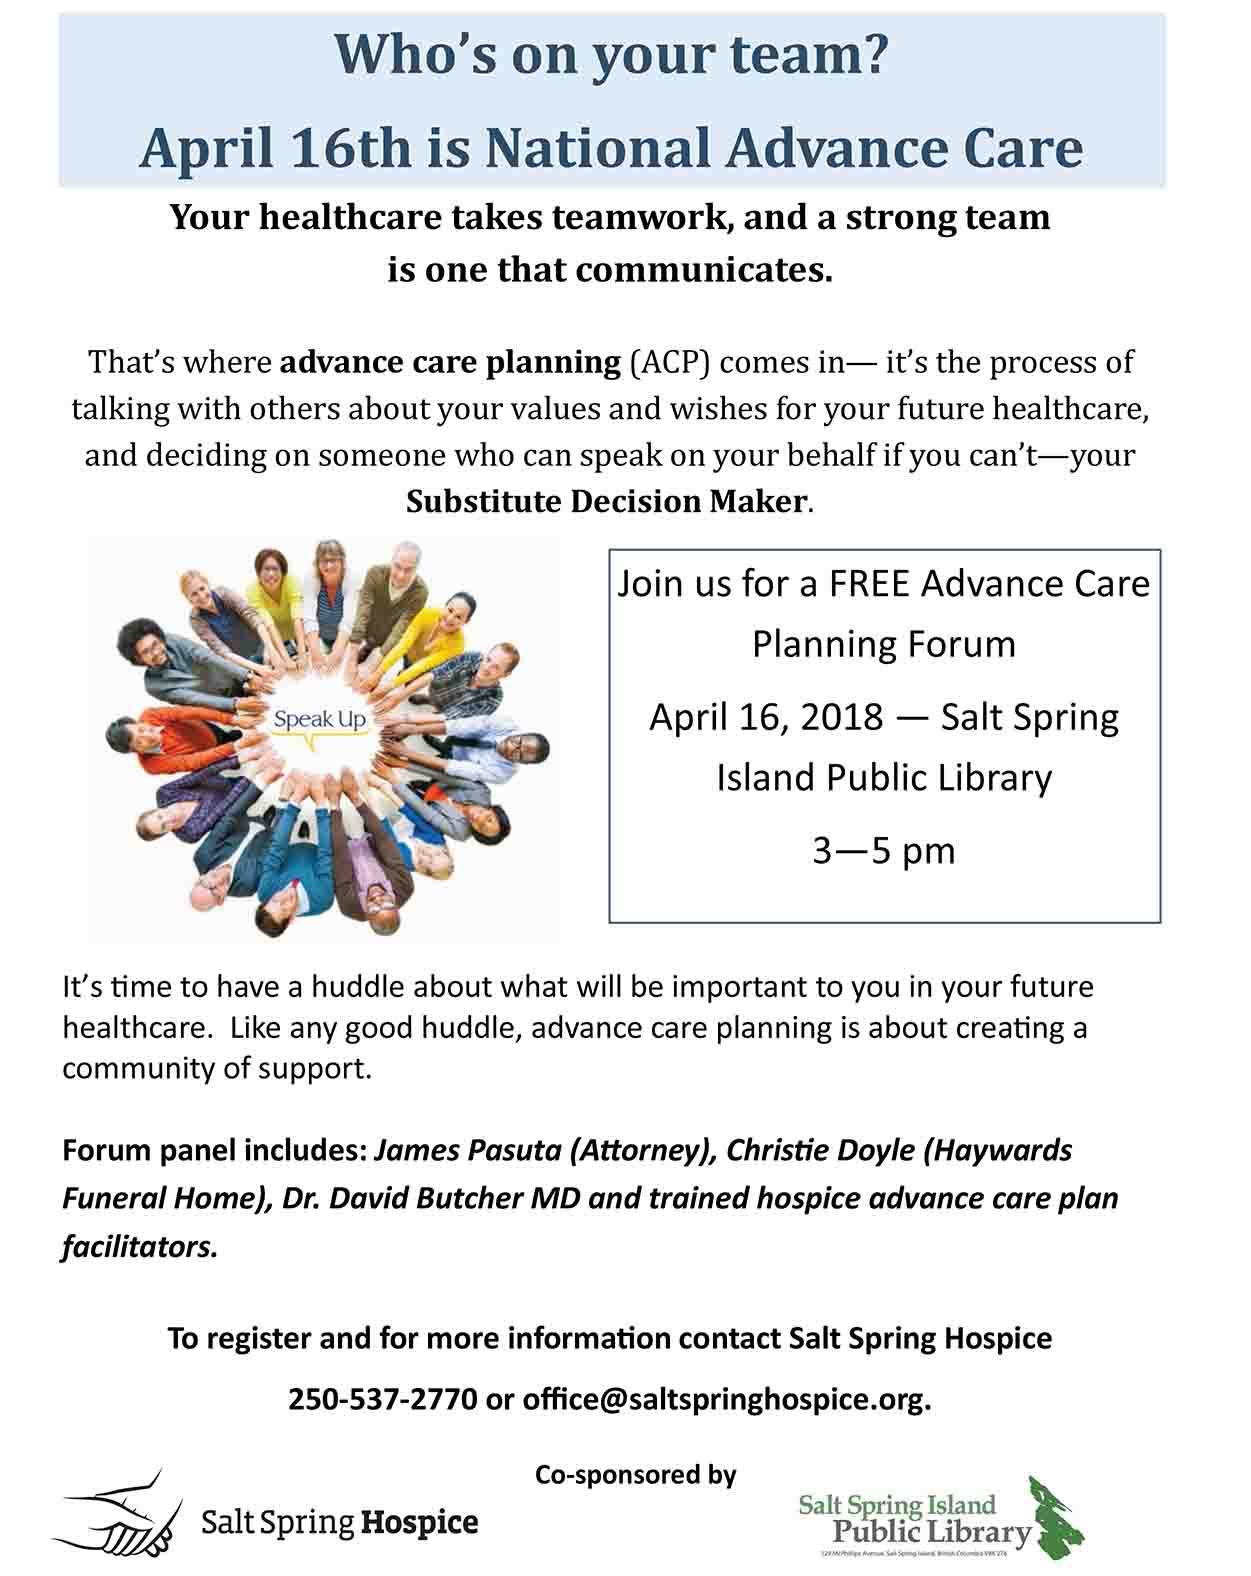 Advance Care Planning Forum @ Community Program Room